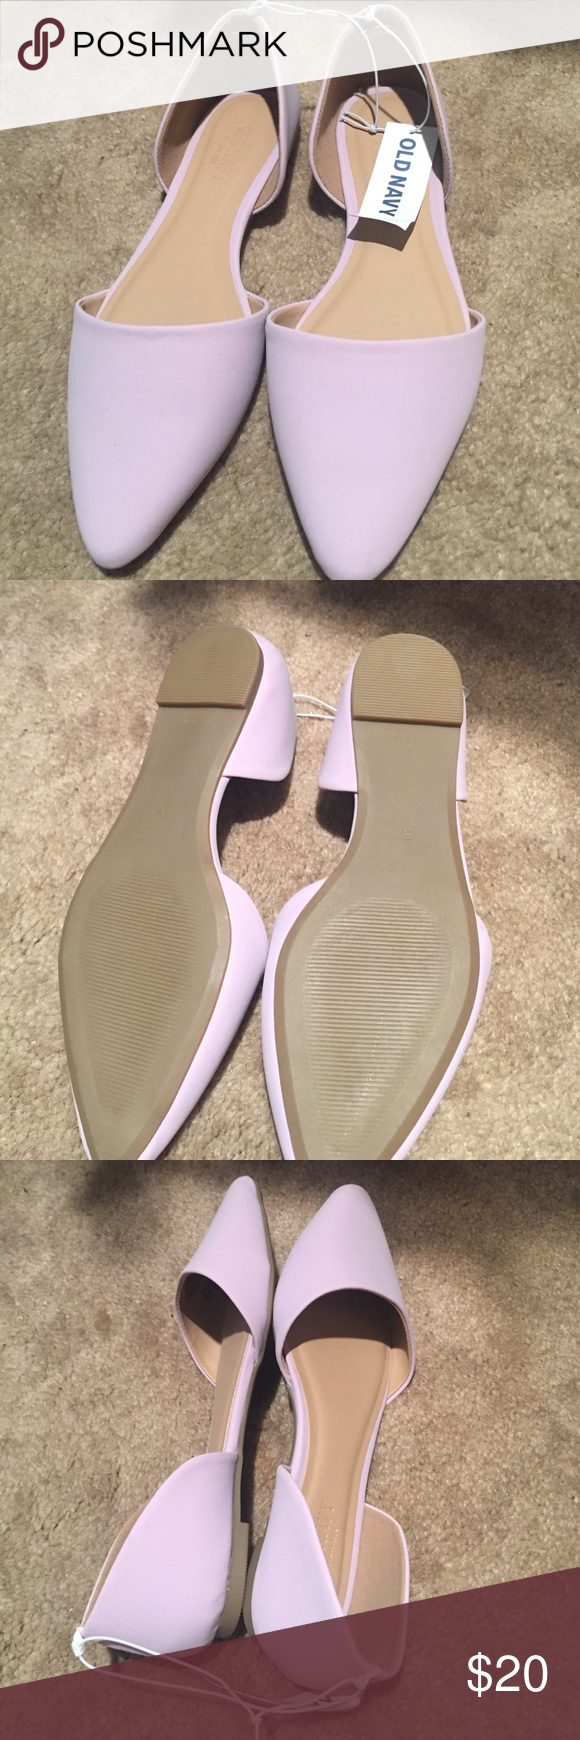 NWT Old Navy D'Orsay Lavender Flats Size 5 New with tags Old Navy flats in super trendy d'orsay style. Beautiful lavender color. Perfect to wear with jeans and a cute sweater! Old Navy Shoes Flats & Loafers